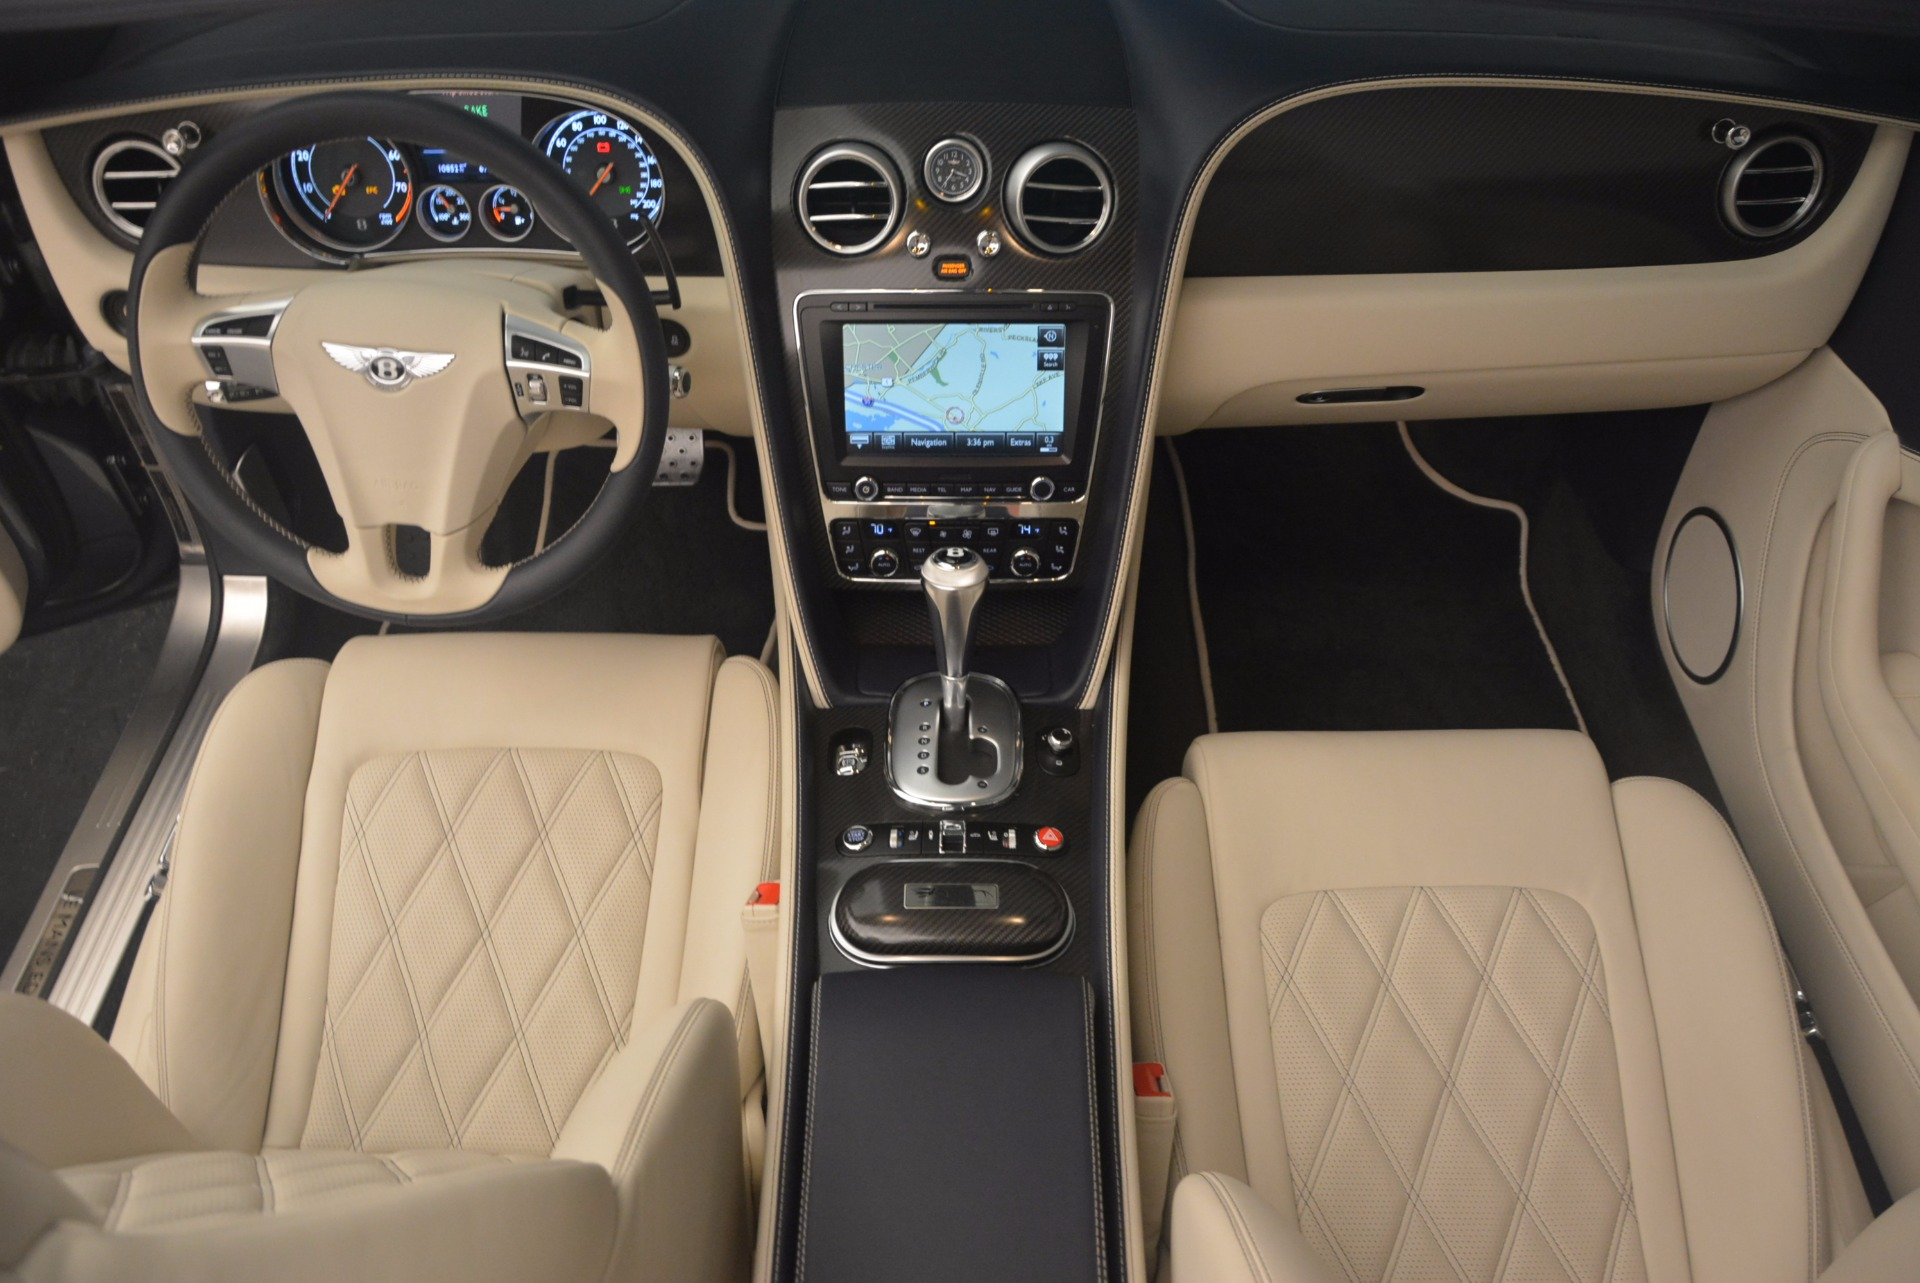 Used 2013 Bentley Continental GT V8 Le Mans Edition, 1 of 48 For Sale In Greenwich, CT 1288_p37